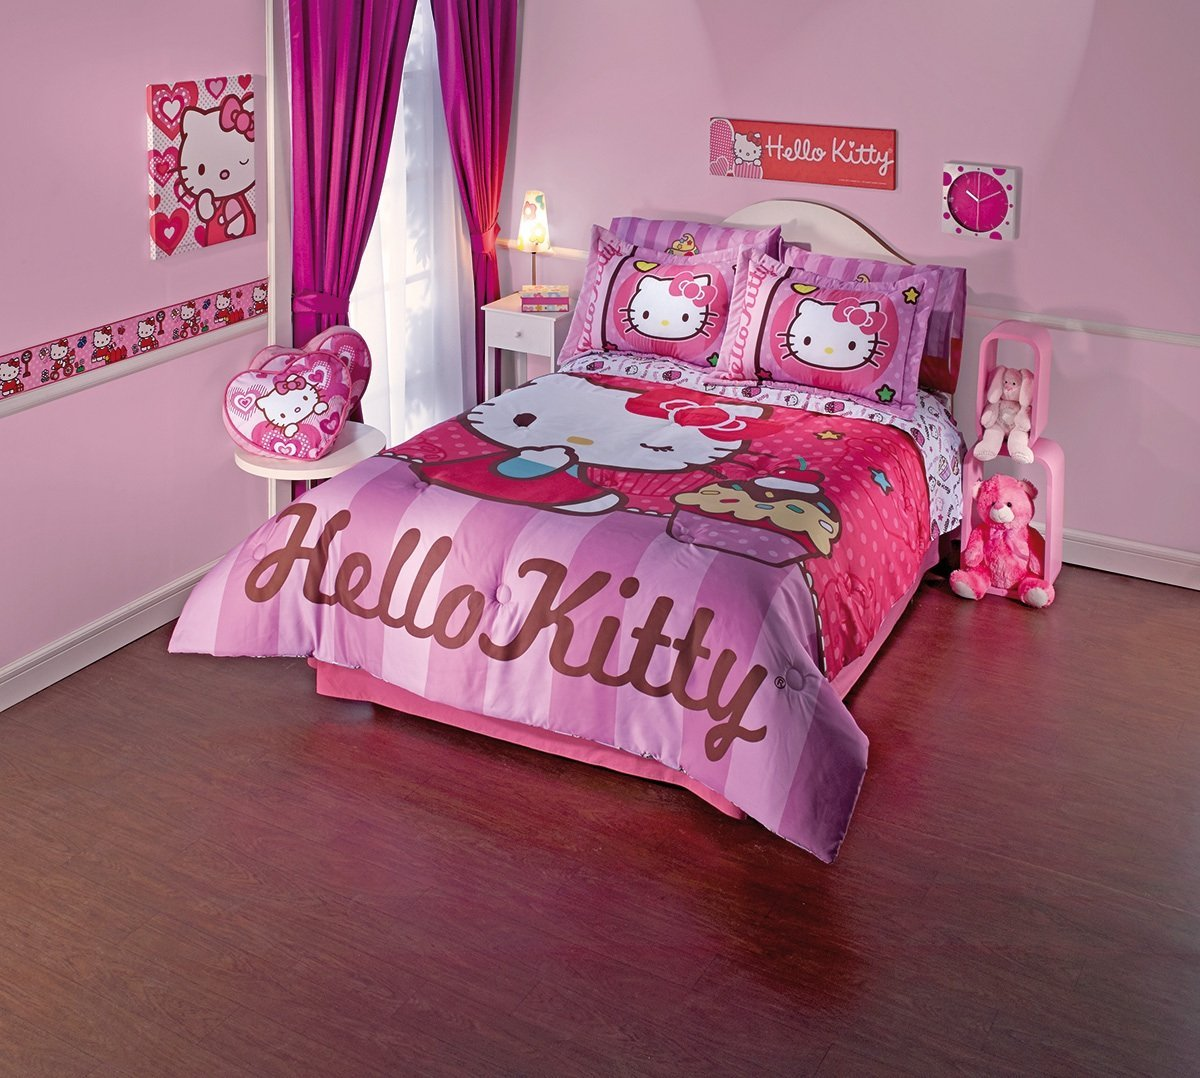 New Hello Kitty Comforter Sheet Set Full Size